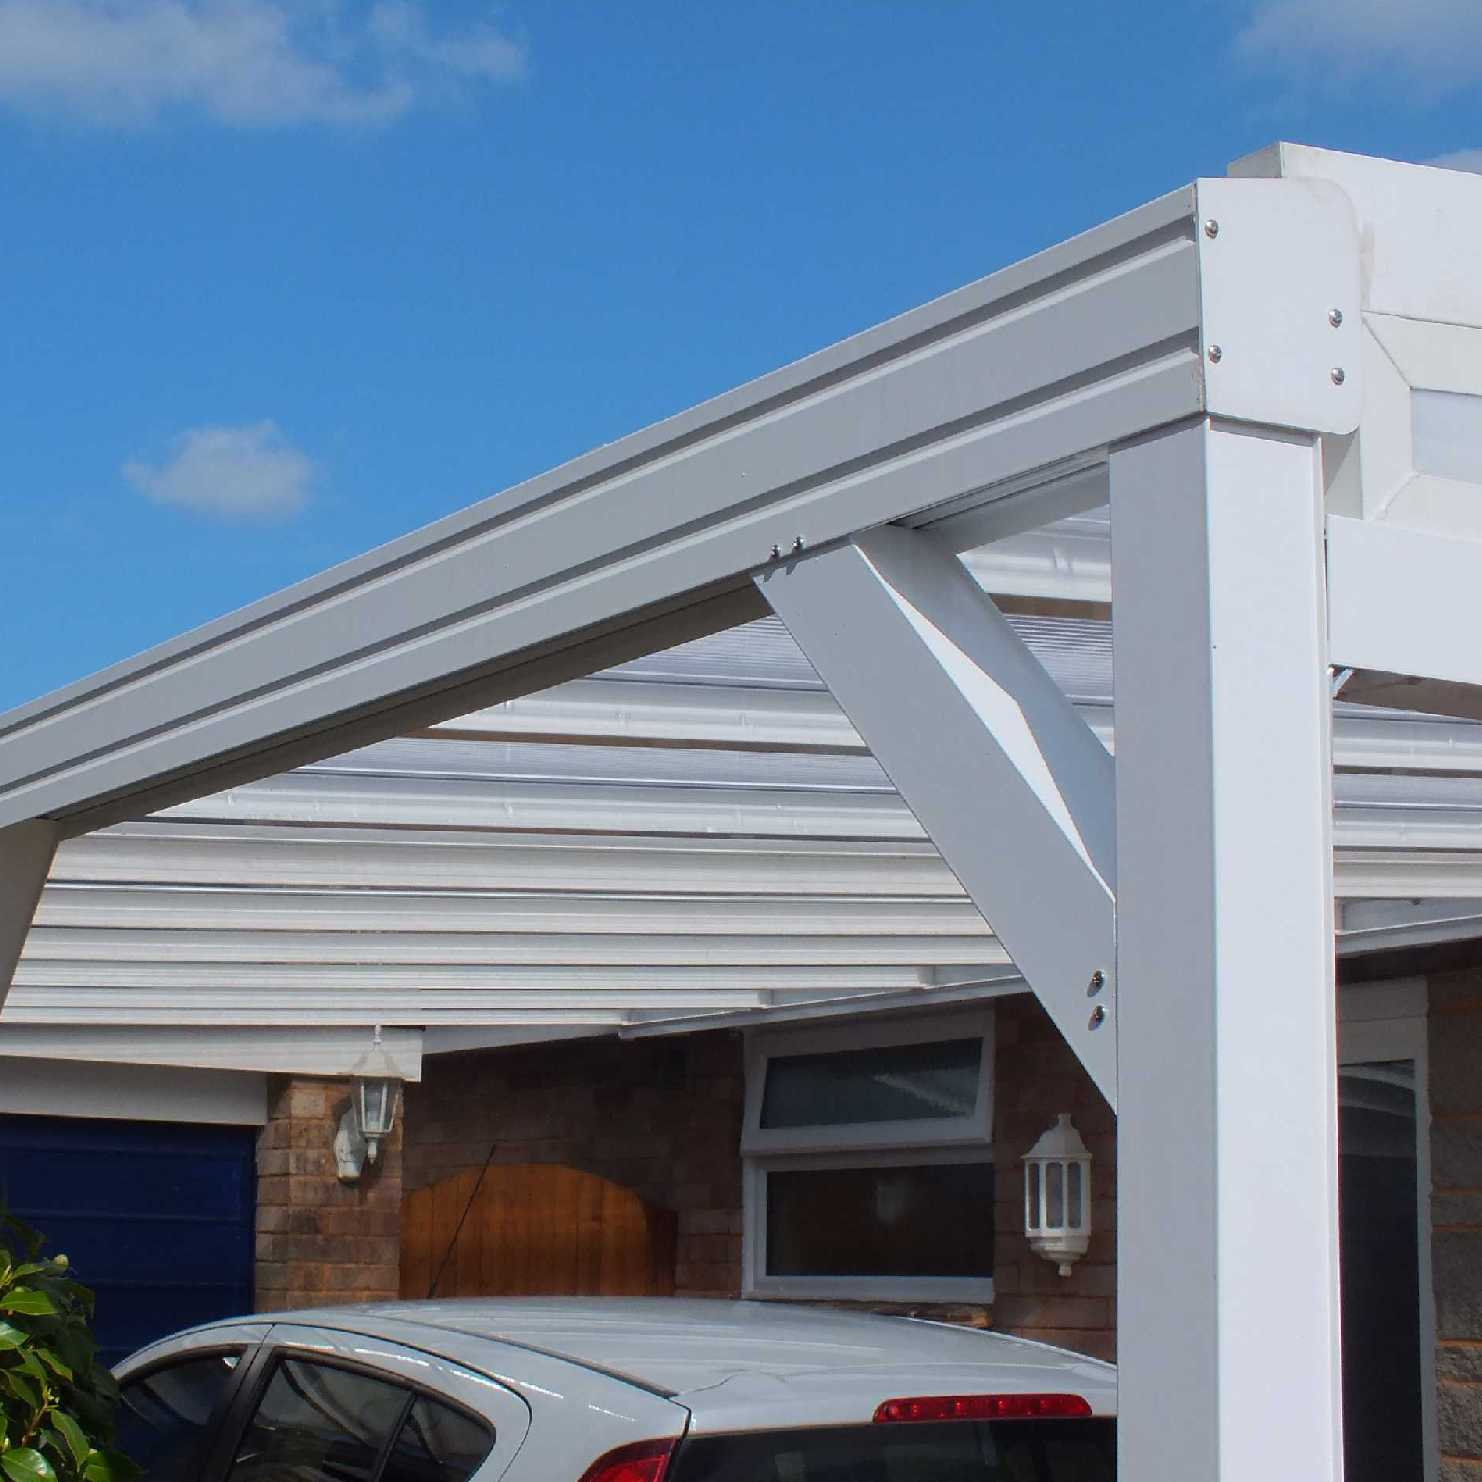 Great deals on Omega Smart Lean-To Canopy with 16mm Polycarbonate Glazing - 9.5m (W) x 1.5m (P), (5) Supporting Posts